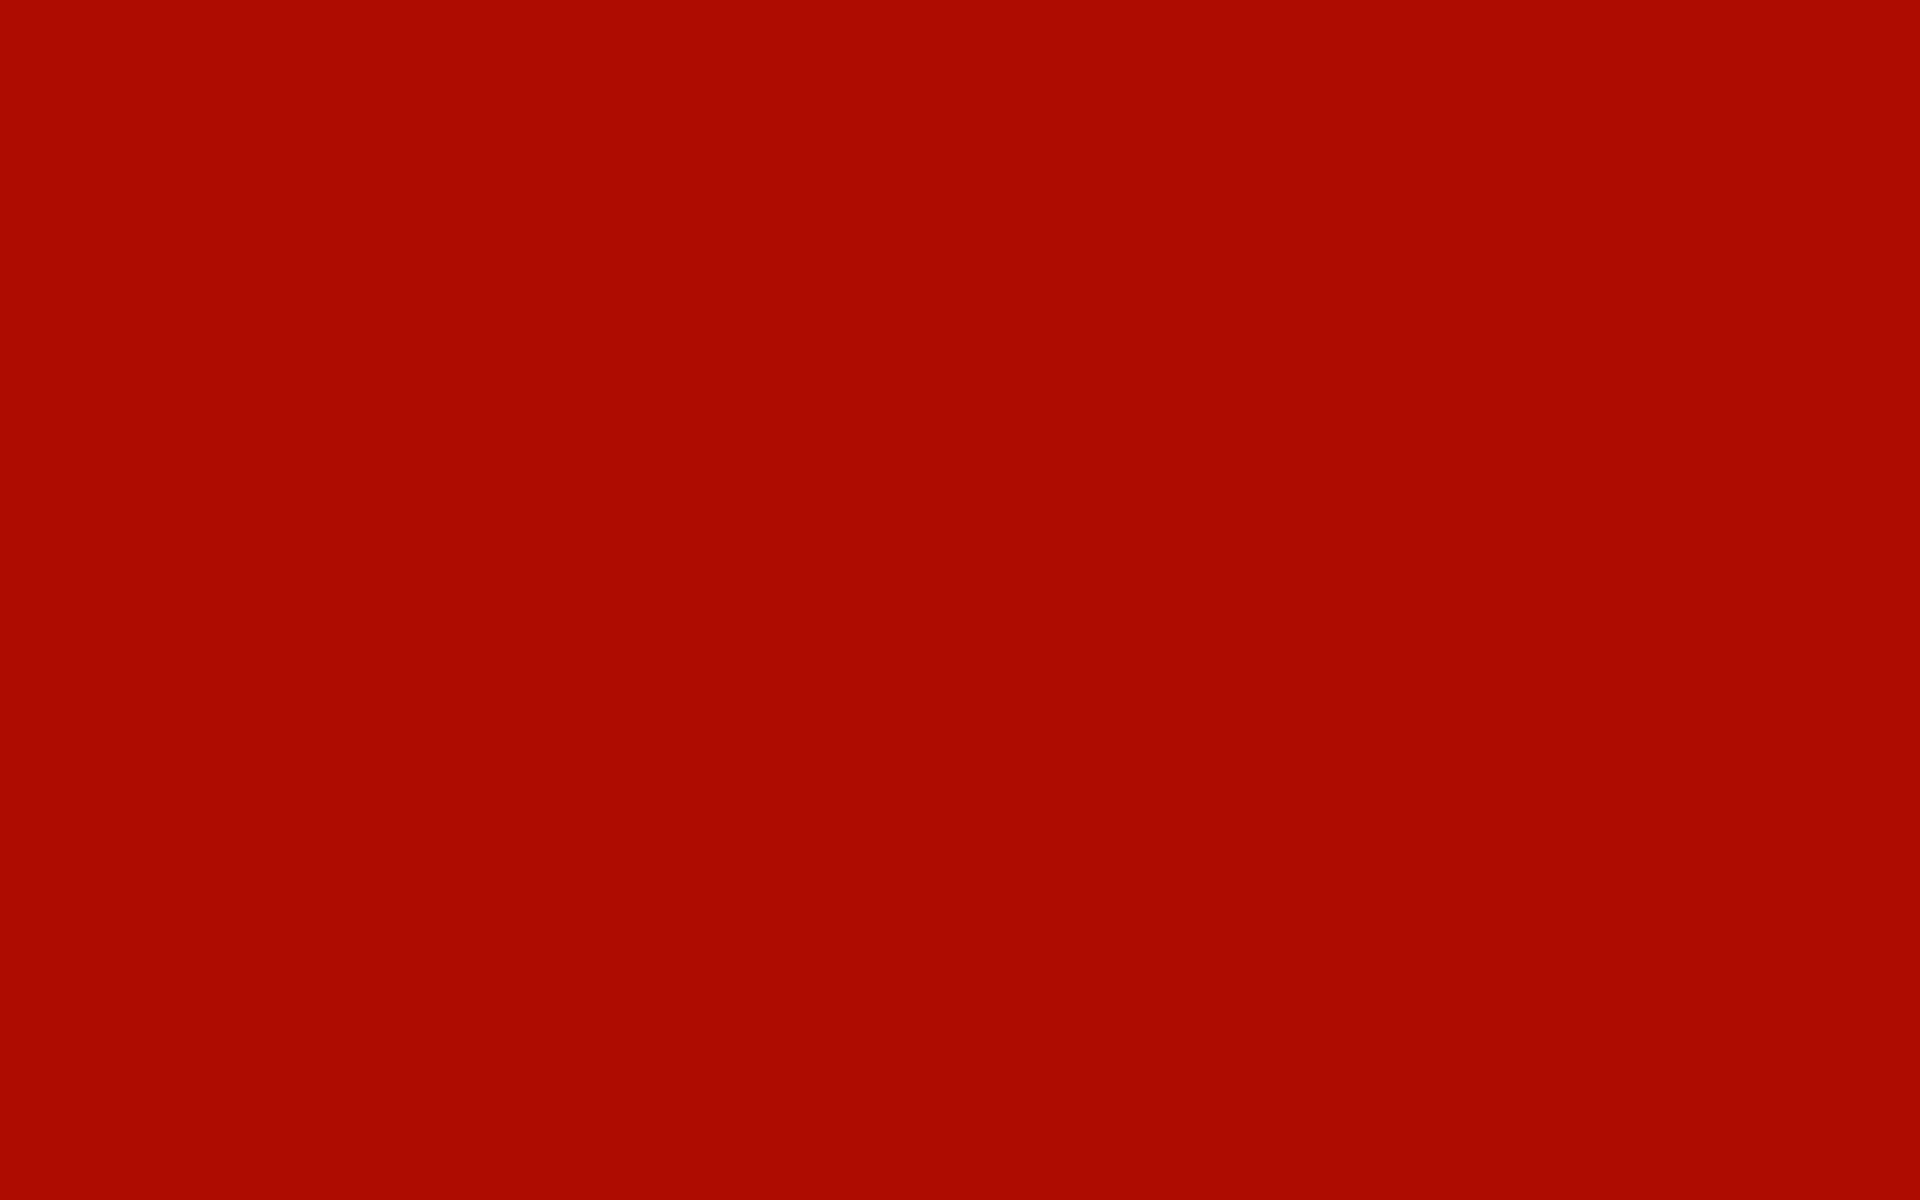 1920x1200 Mordant Red 19 Solid Color Background